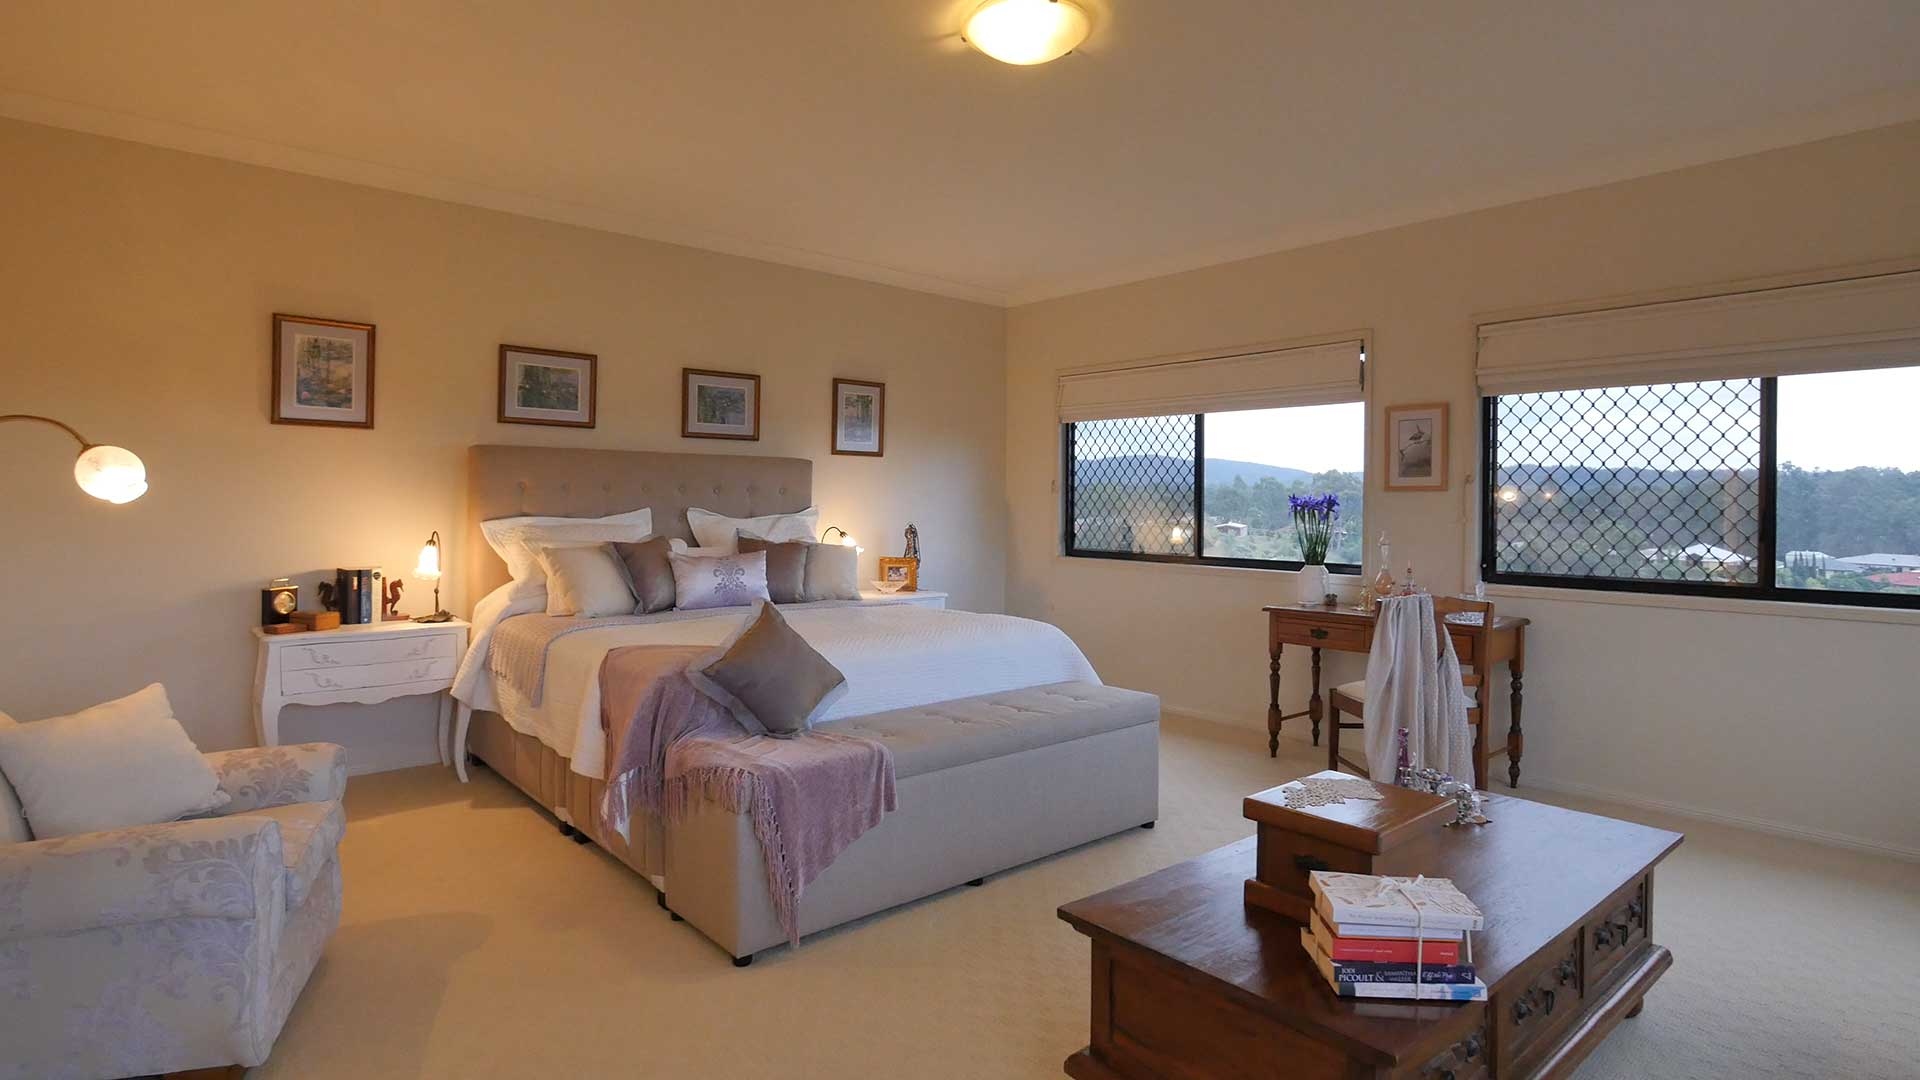 Although the 180 degree view from the bedroom windows were a feature of this bedroom, I think a better perspective was achieved by turning the camera round and simply focusing on the room itself. I was able to use the natural daylight coming into the room from behind the camera to capture a much more balanced shot for both the inside and out.